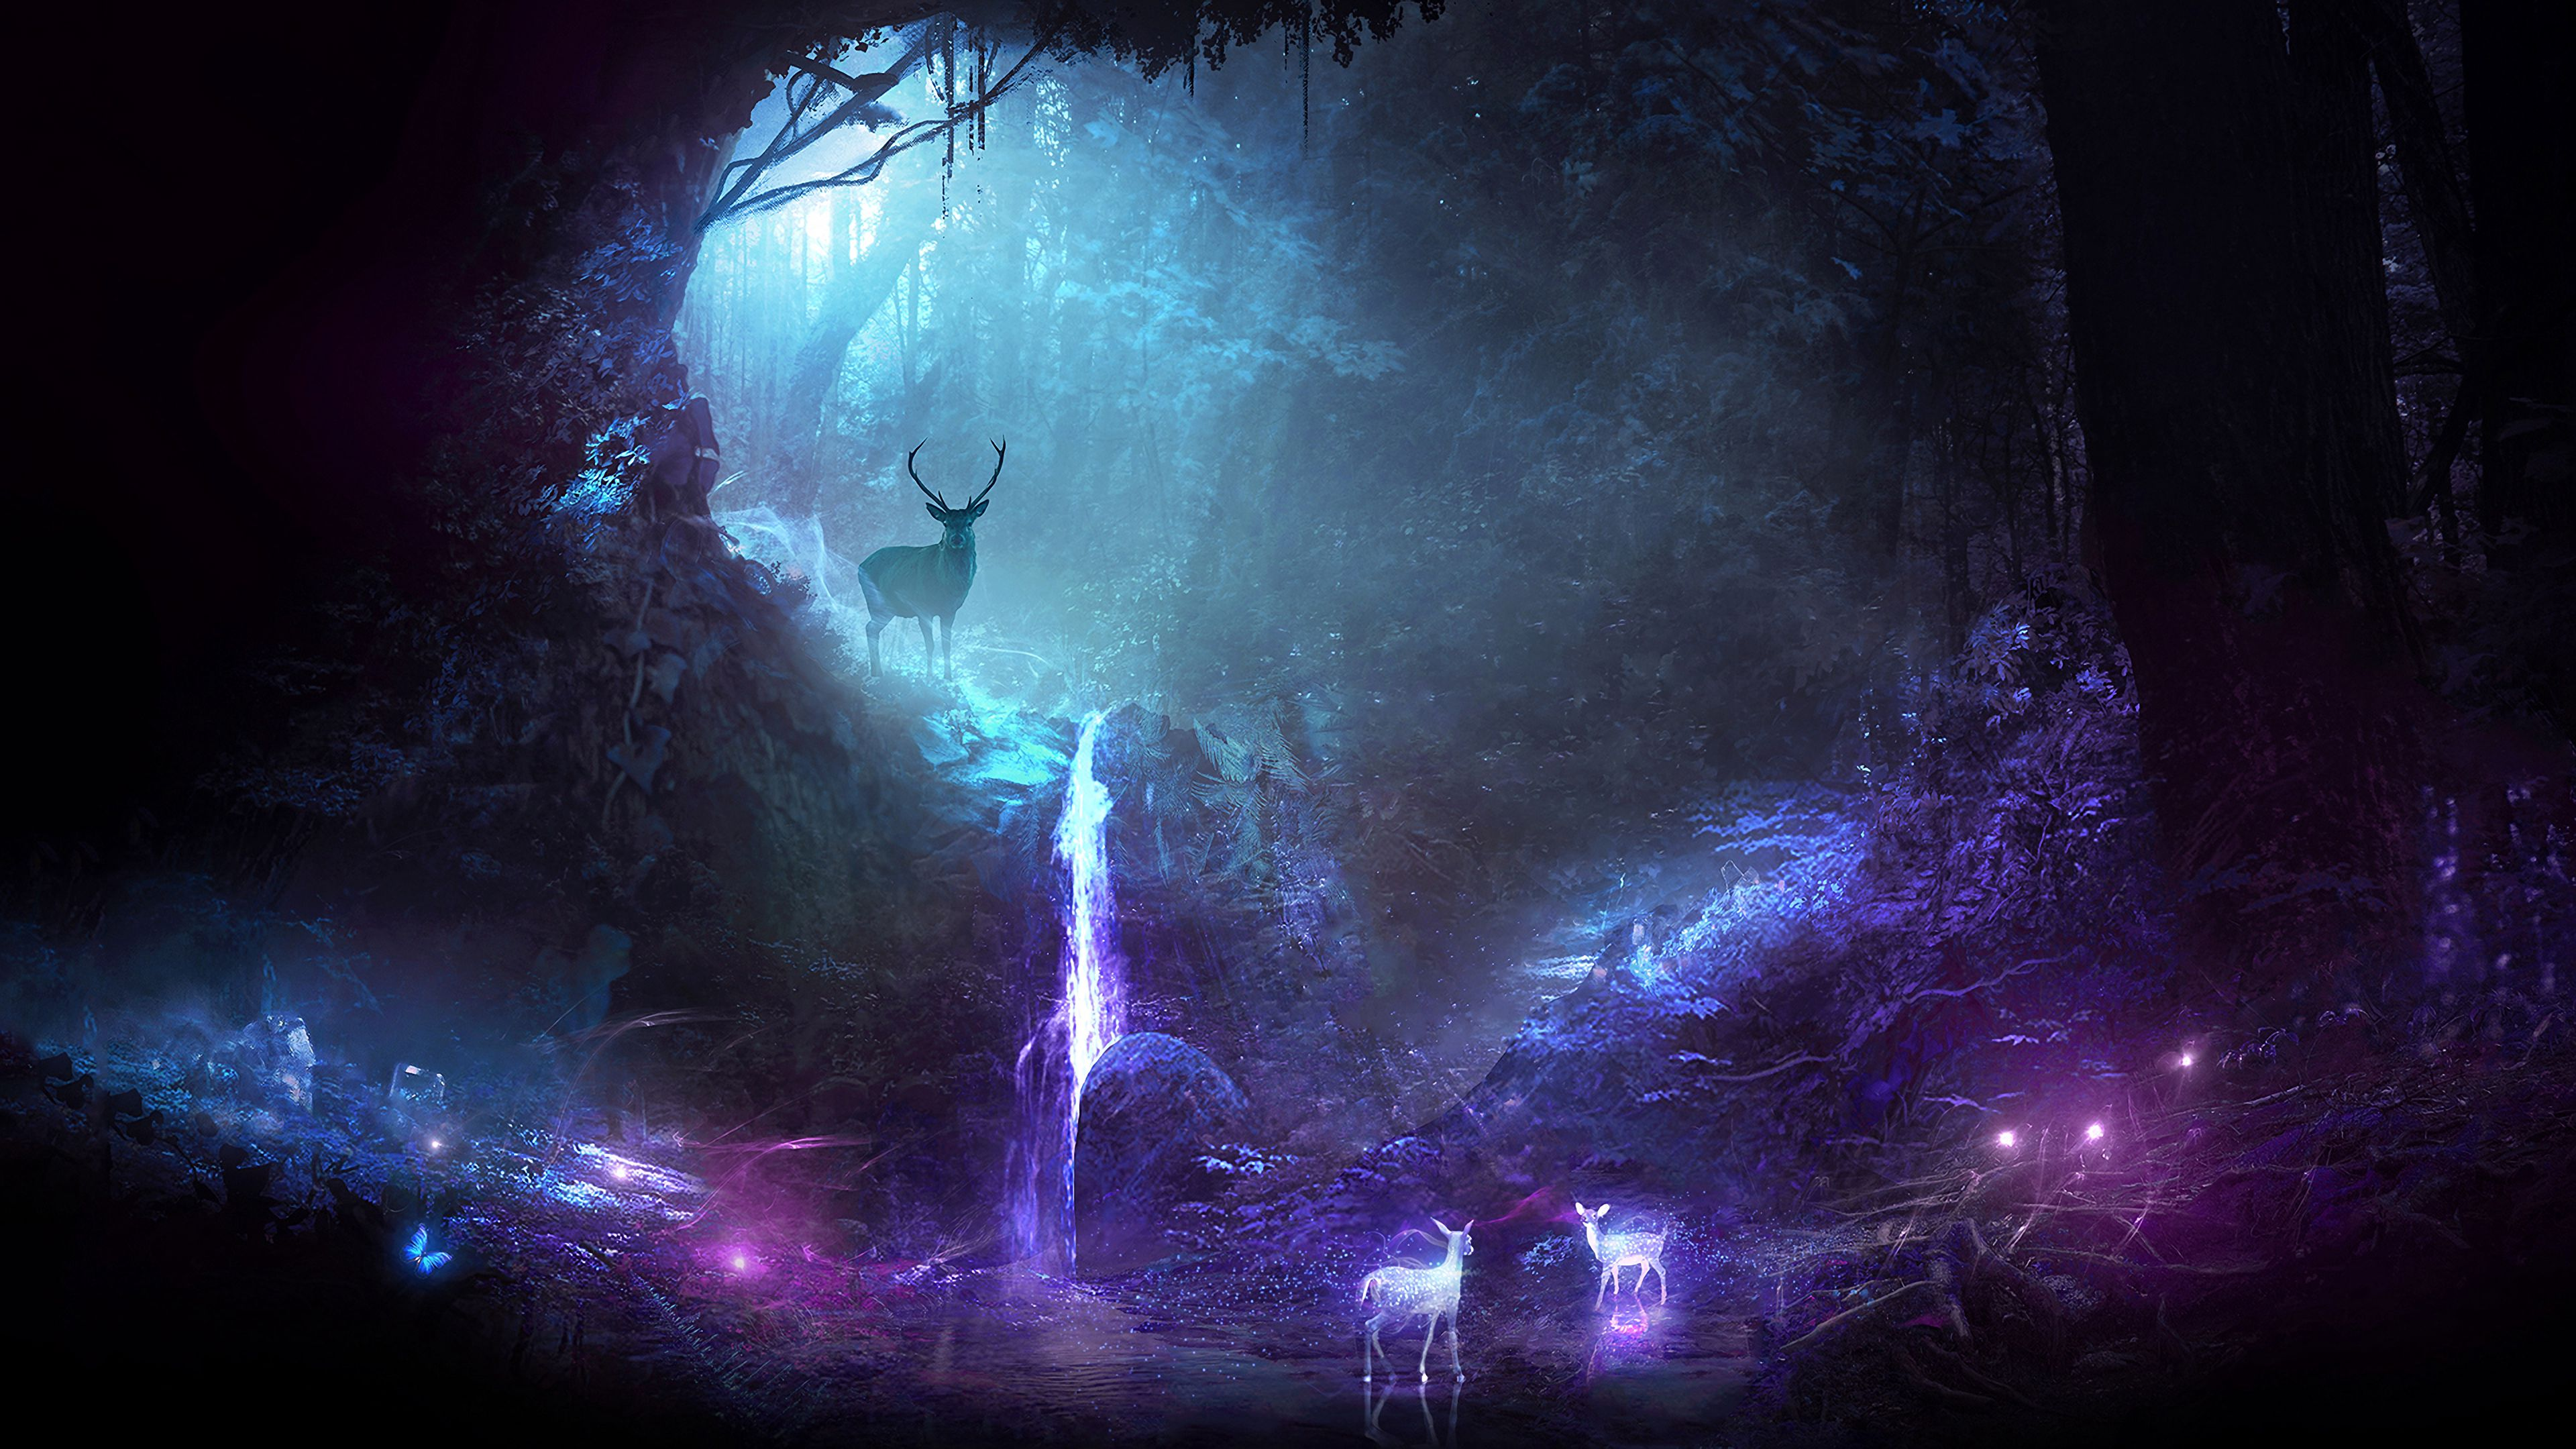 106643 download wallpaper Art, Forest, Deer, Cave, Shining screensavers and pictures for free